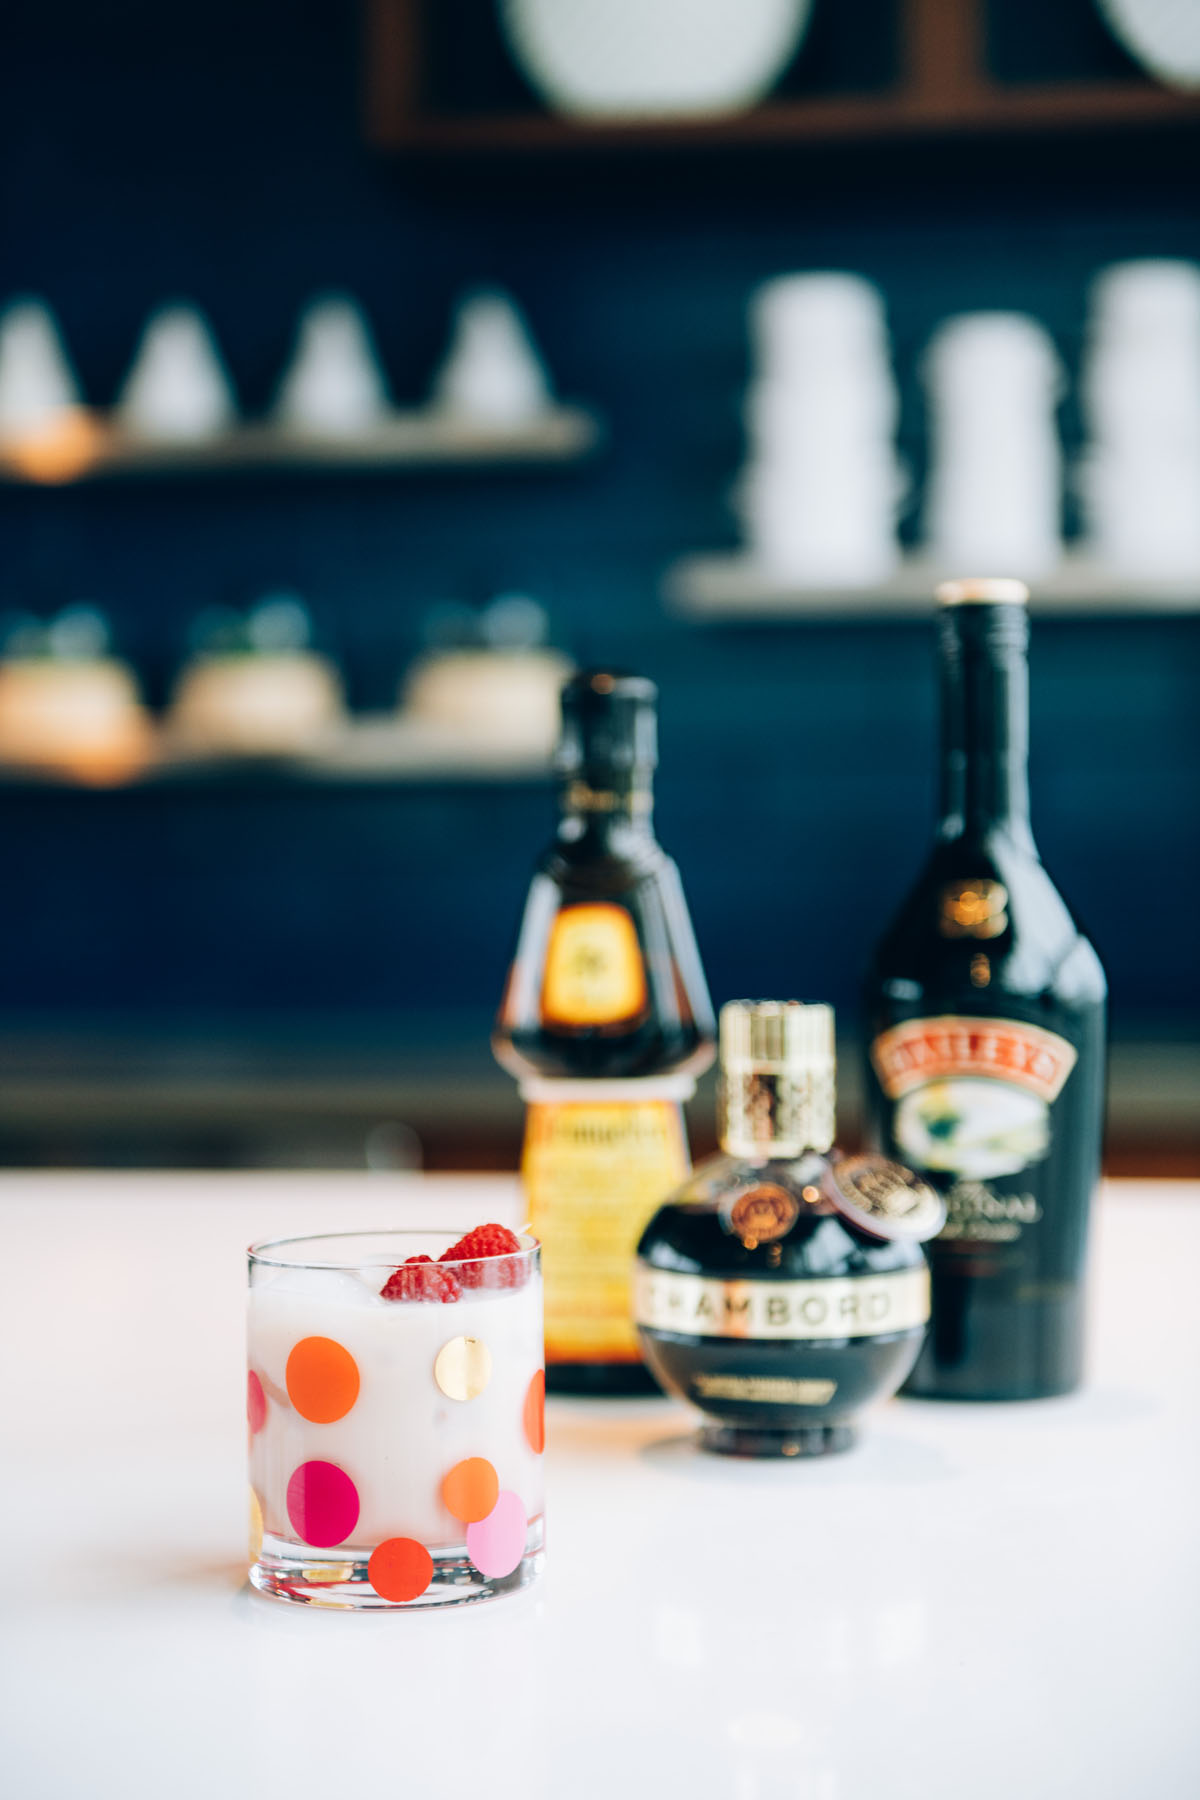 Jessica Sturdy shares her recipe for a winter cocktail with nuts and berries.